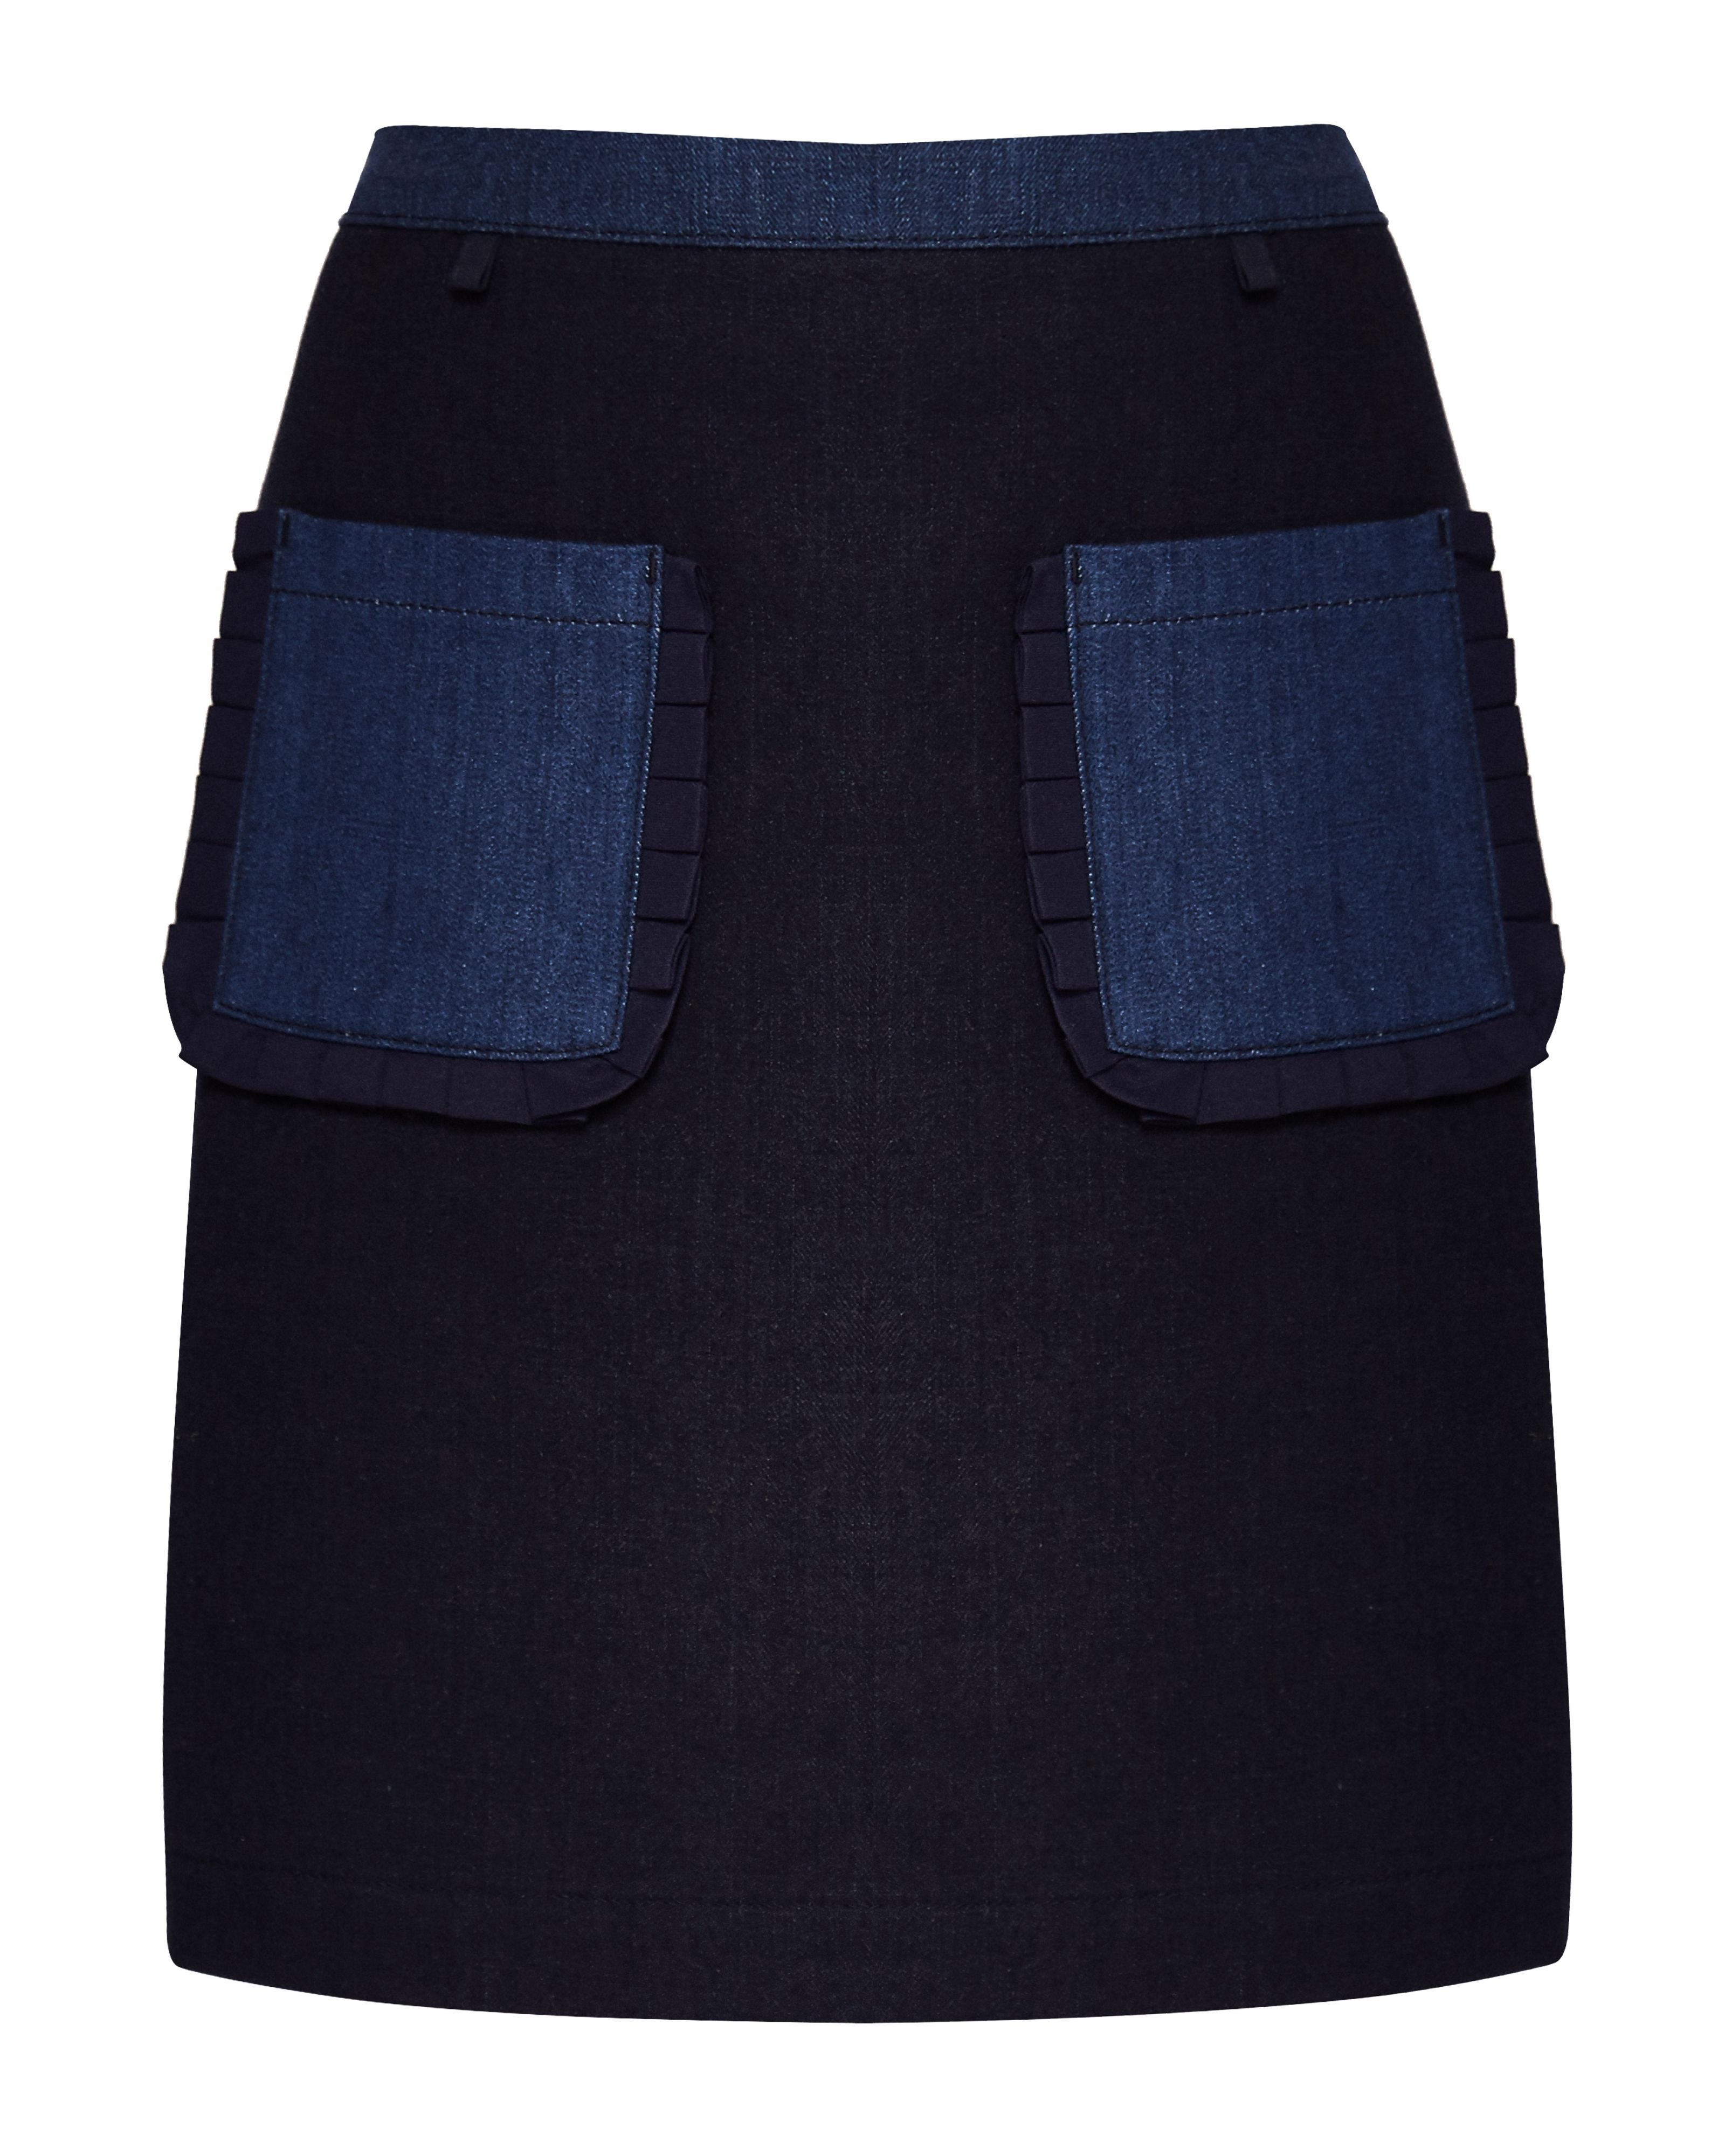 Ted Baker Aaloo CBN Denim Mini Skirt, Denim